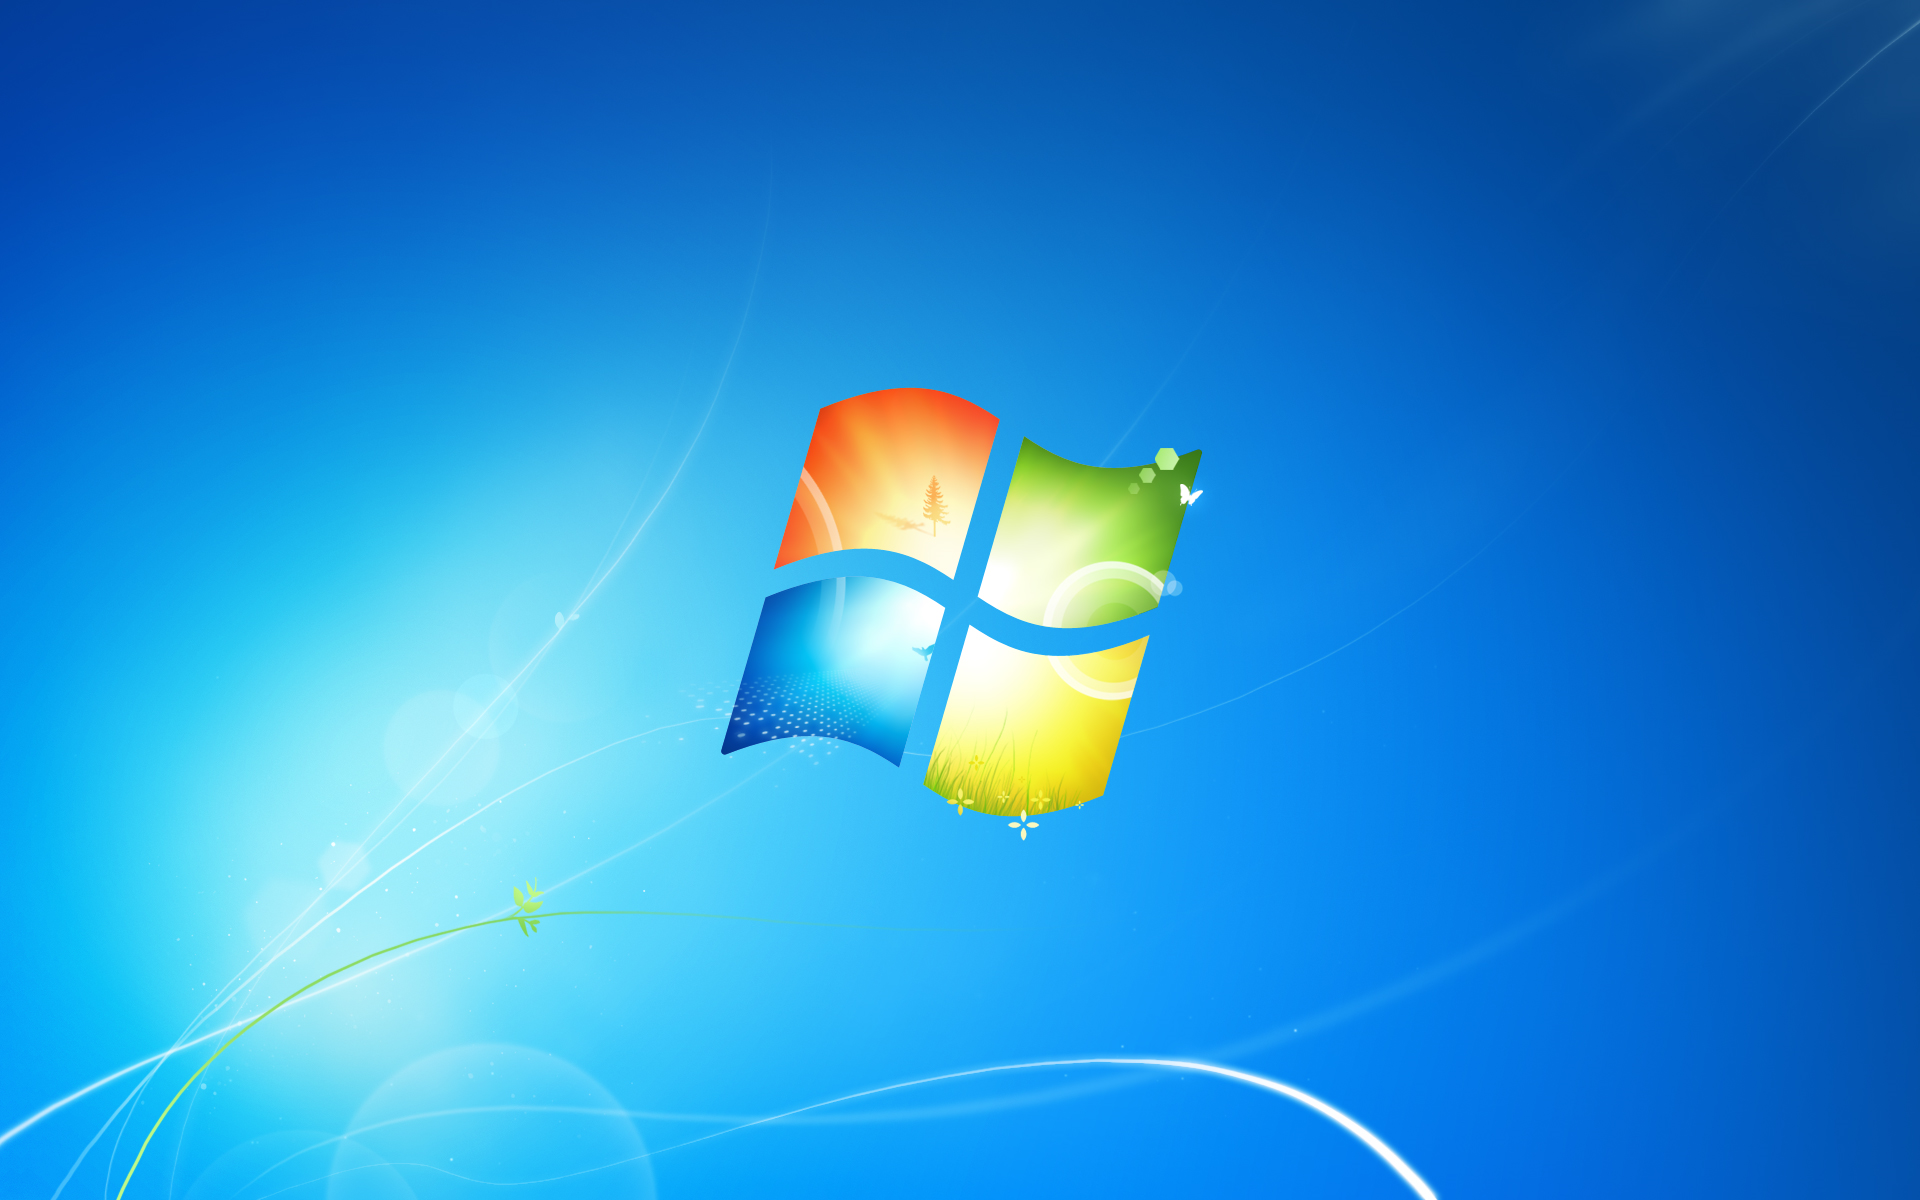 Windows 7 Default Wallpapers